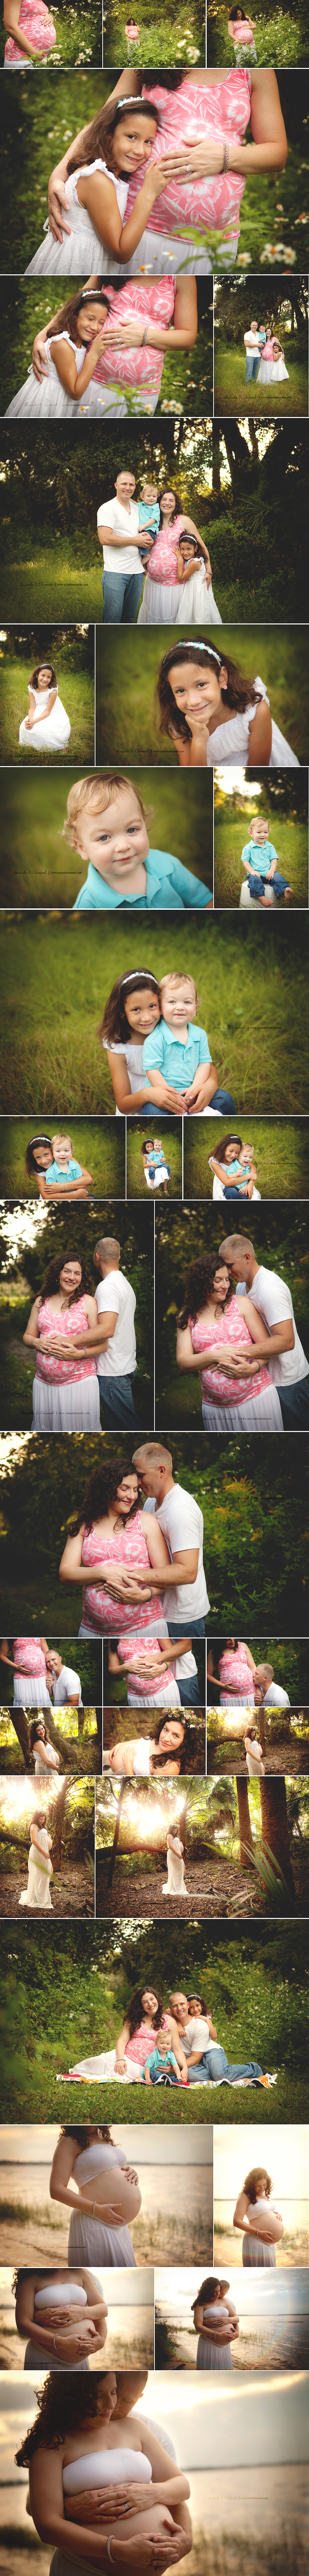 Jacksonville, FL maternity Photographer